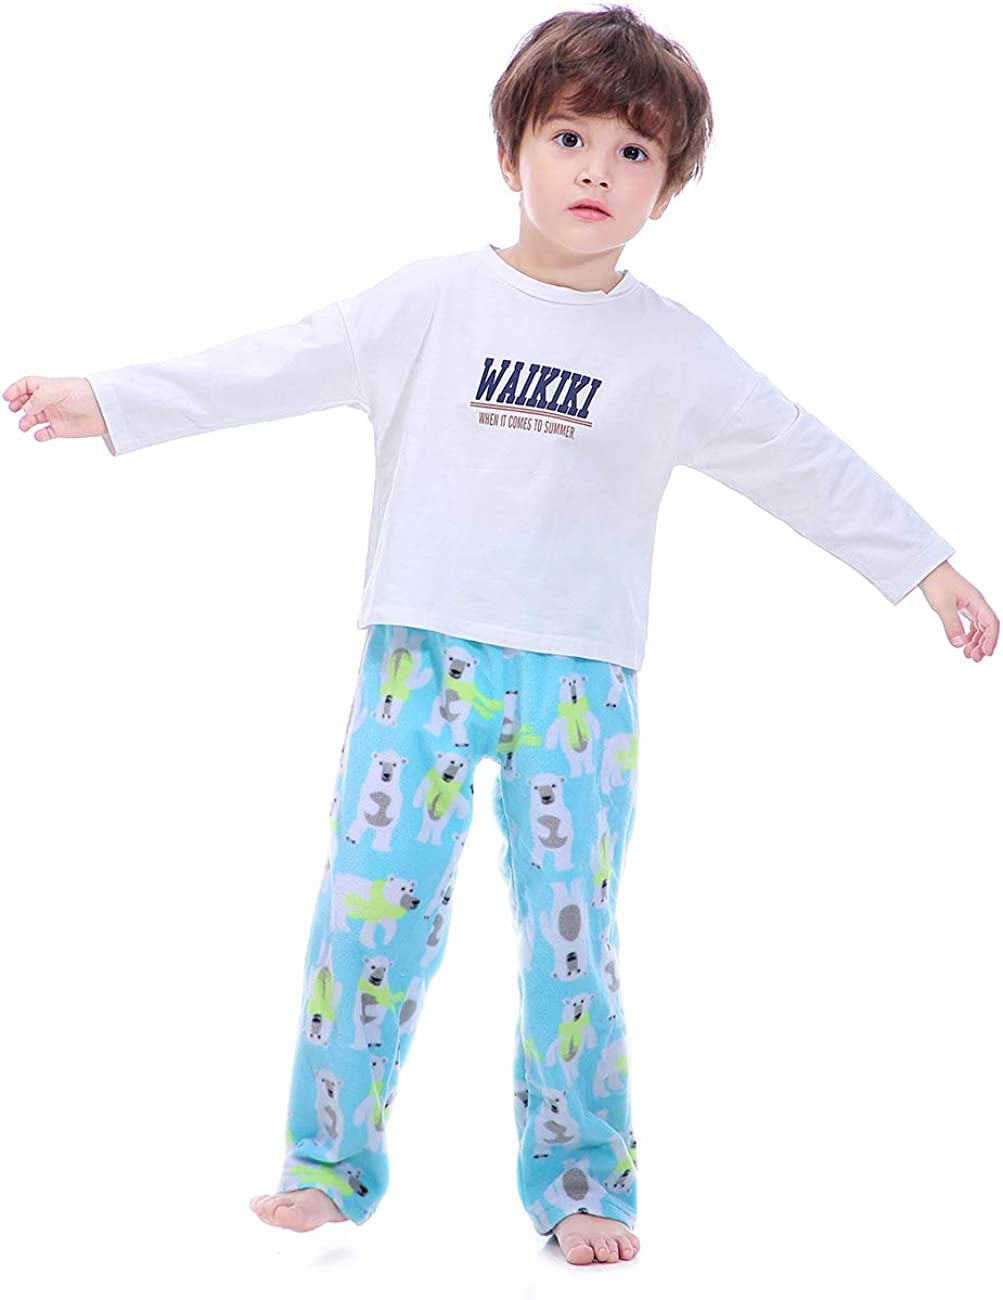 Soft Casual Loose Fleece Lounge Bottoms Size 2T 3T 4T OLEH-OLEH Baby and Toddler Boy/'s Pajama Pants